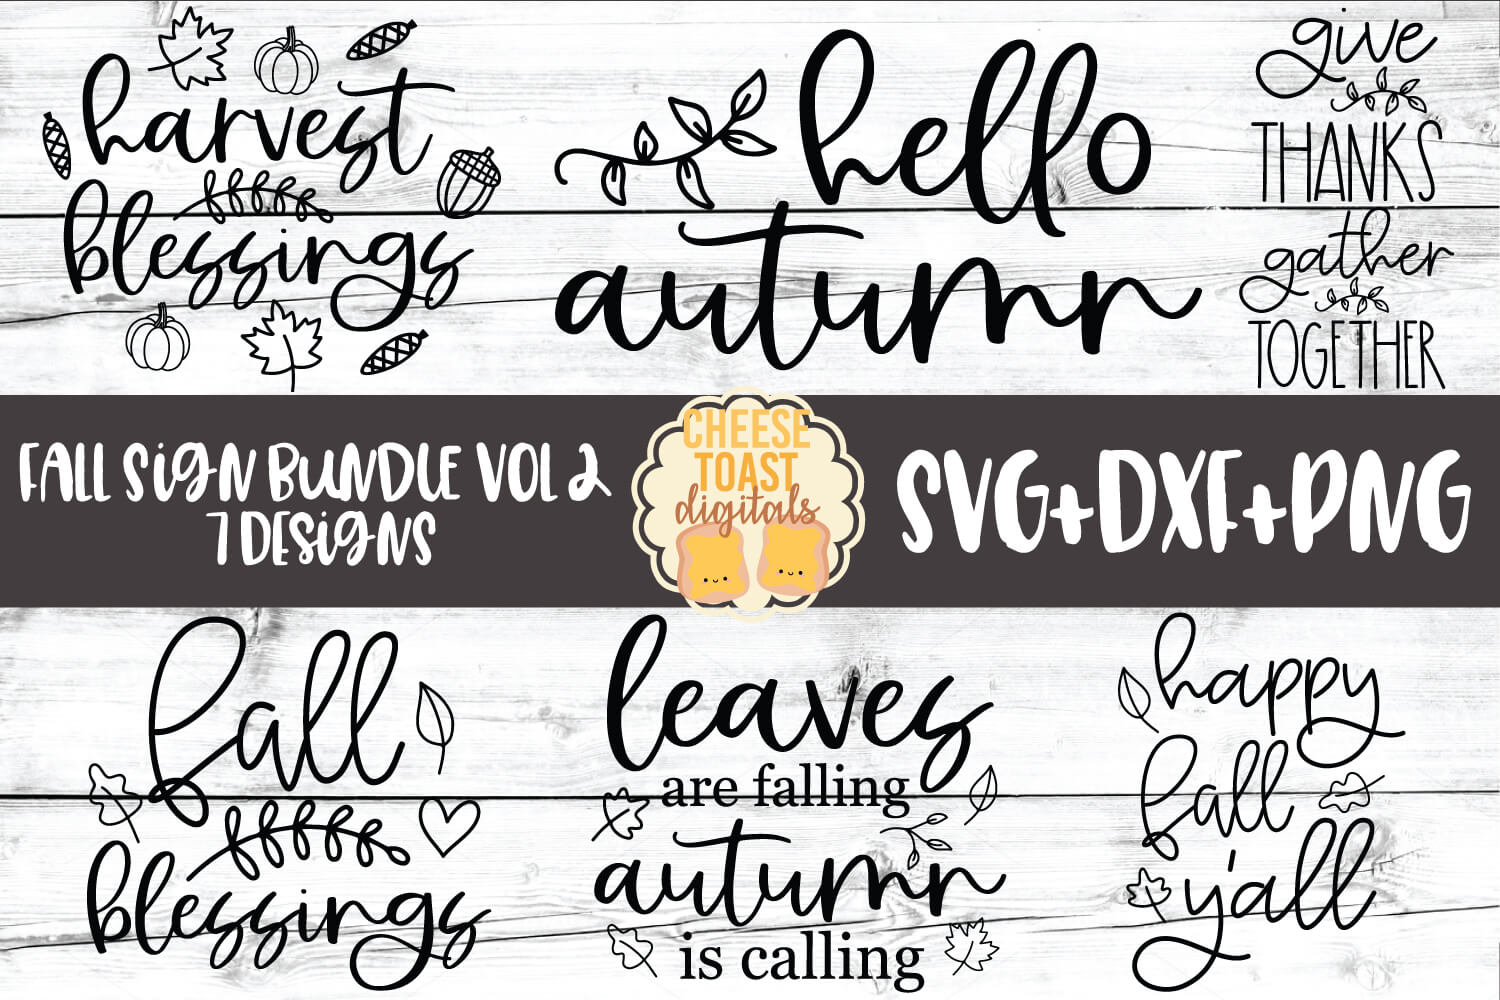 Fall Sign Bundle Vol 2 - Autumn SVG PNG DXF Cut Files example image 1